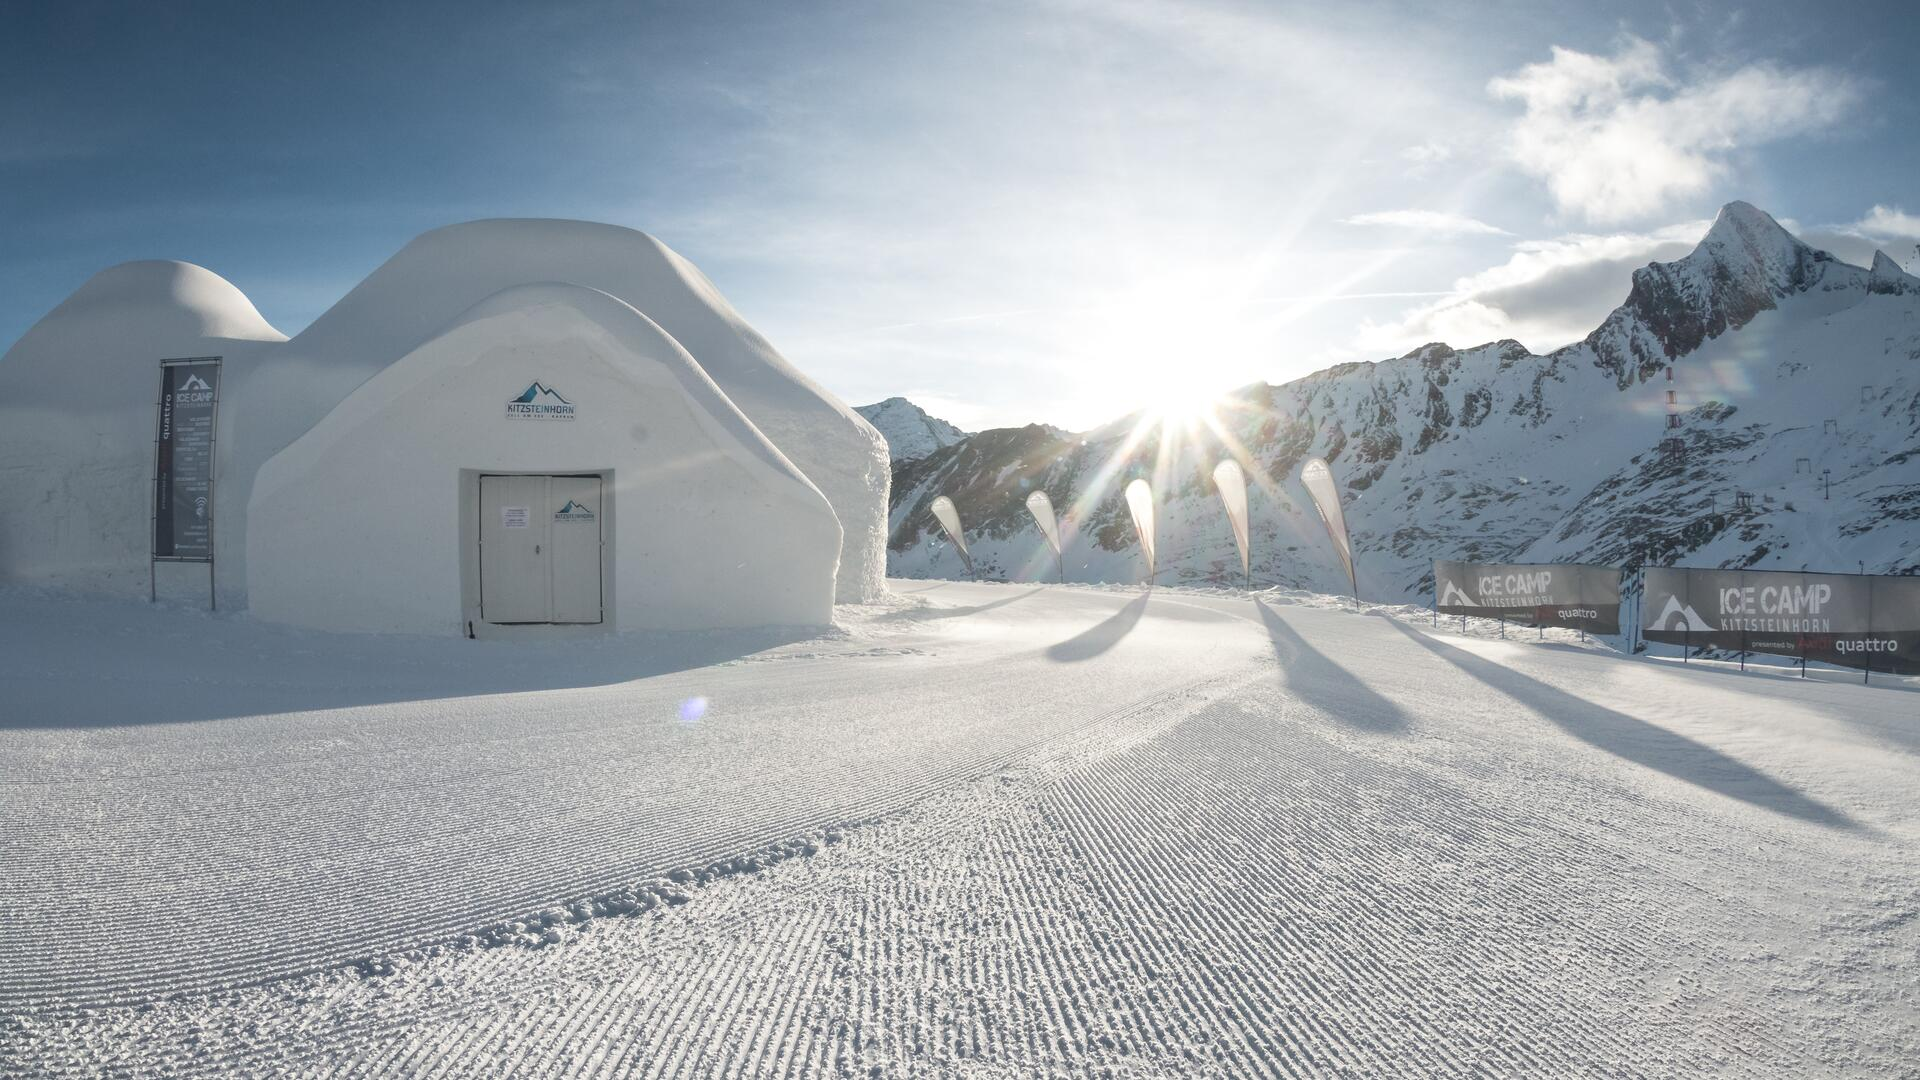 The ICE CAMP presented by Audi is THE meeting point in the Kitzsteinhorn Glacier ski resort in Kaprun